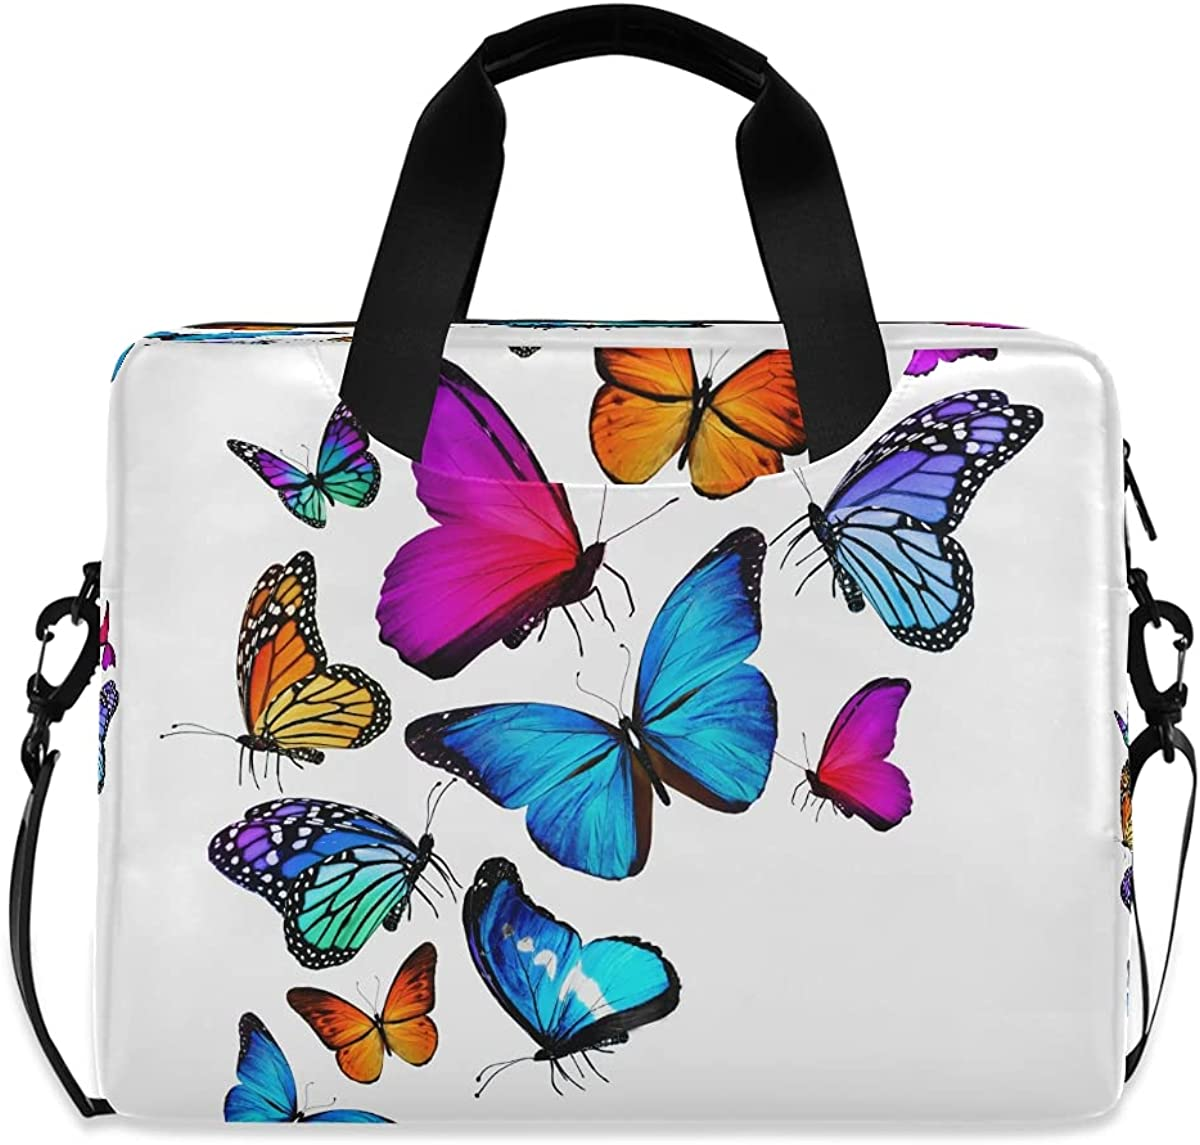 BOLOLI Max 84% OFF Rainbow Butterfly Laptop Case Colorful Briefcase New mail order Sleeve